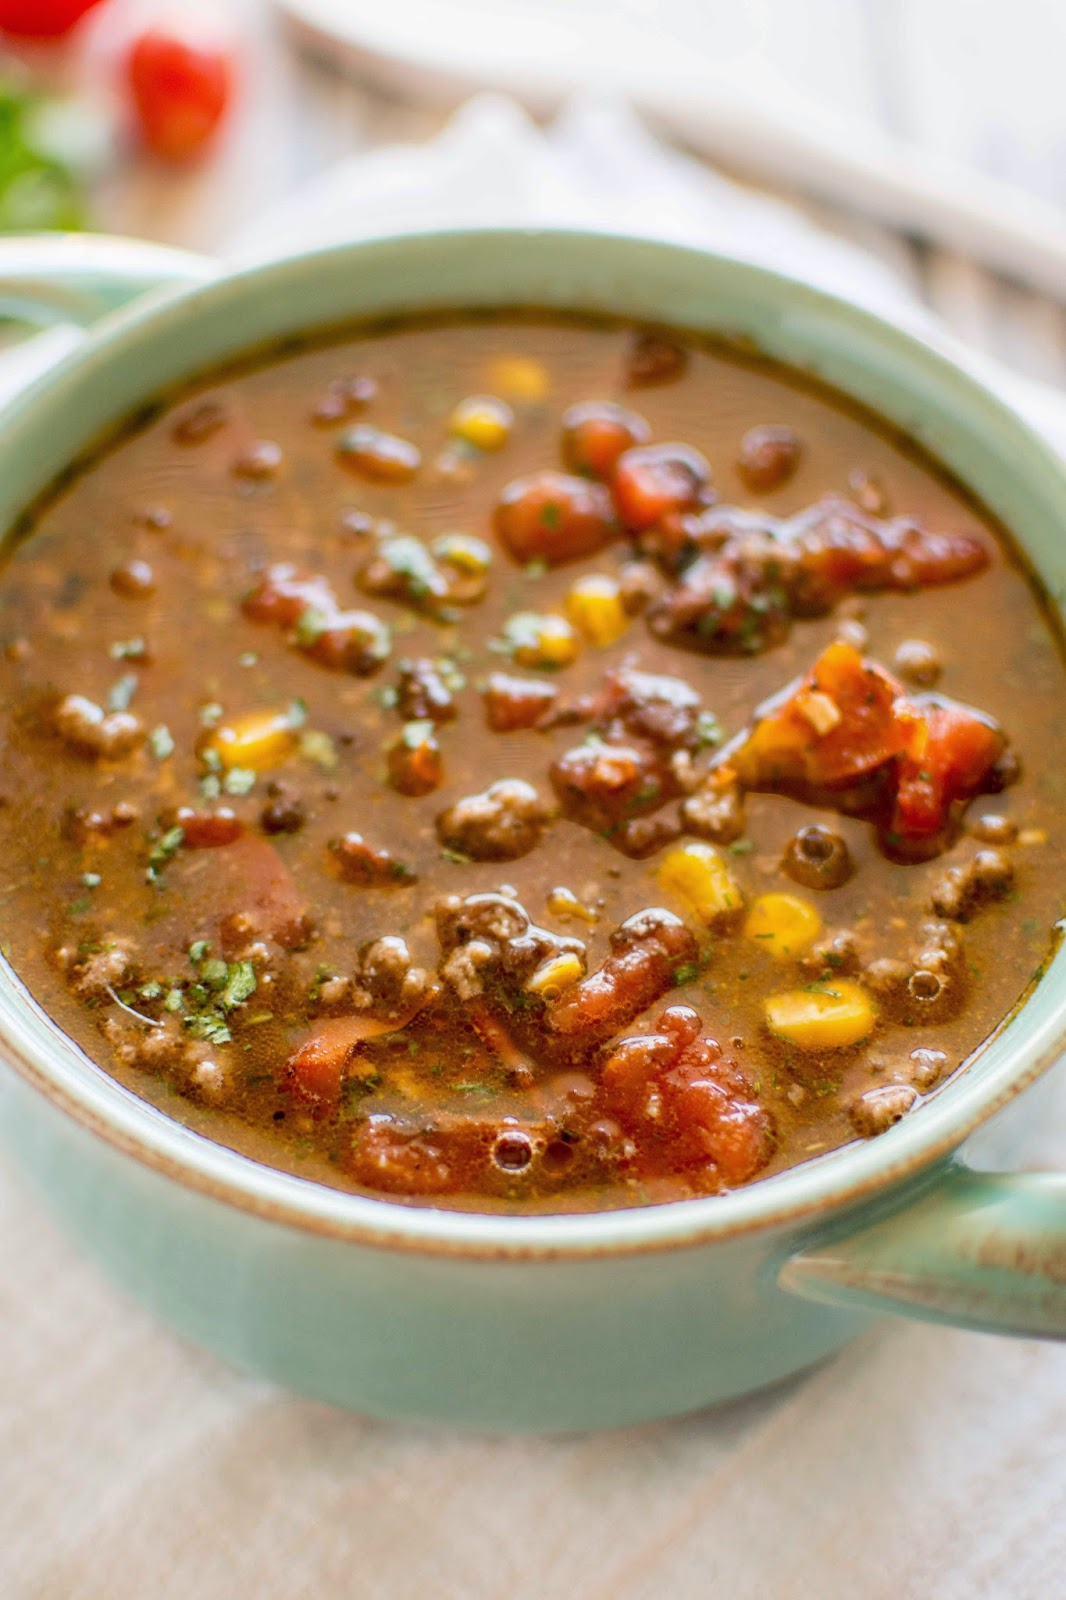 Crockpot Taco Soup from Crockpot Gourmet found on SlowCookerFromScratch.com